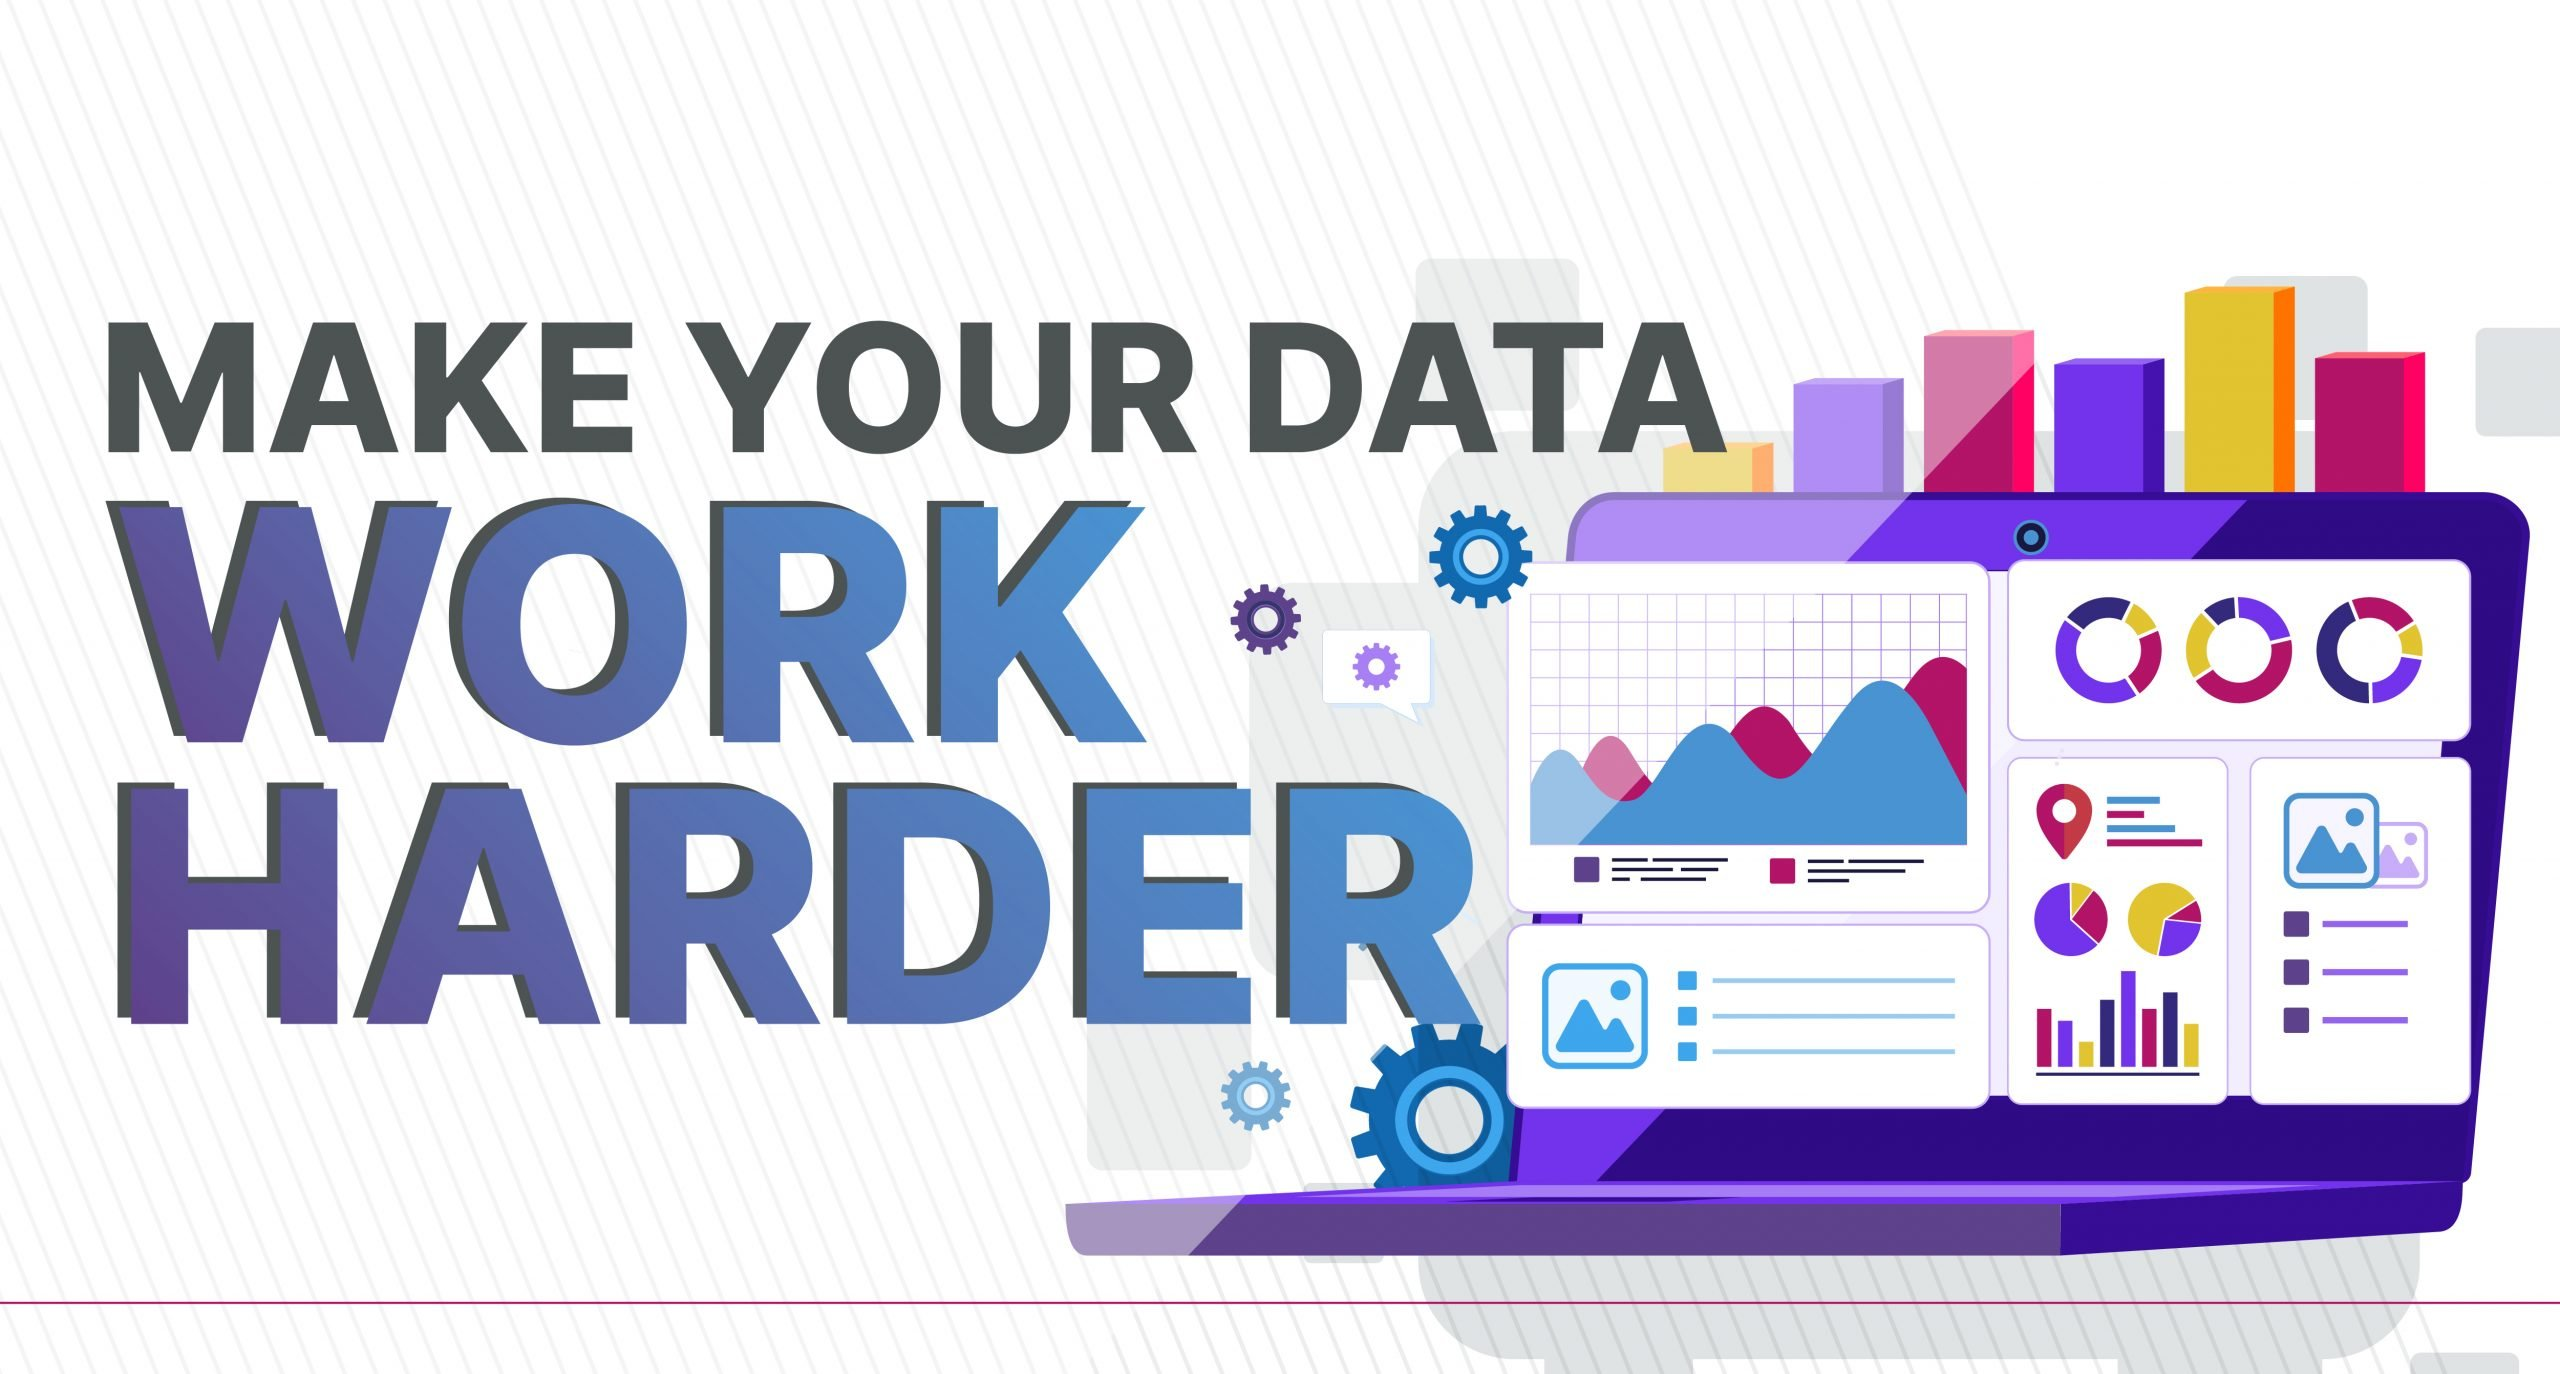 Make your data work harder to meet multiple business needs